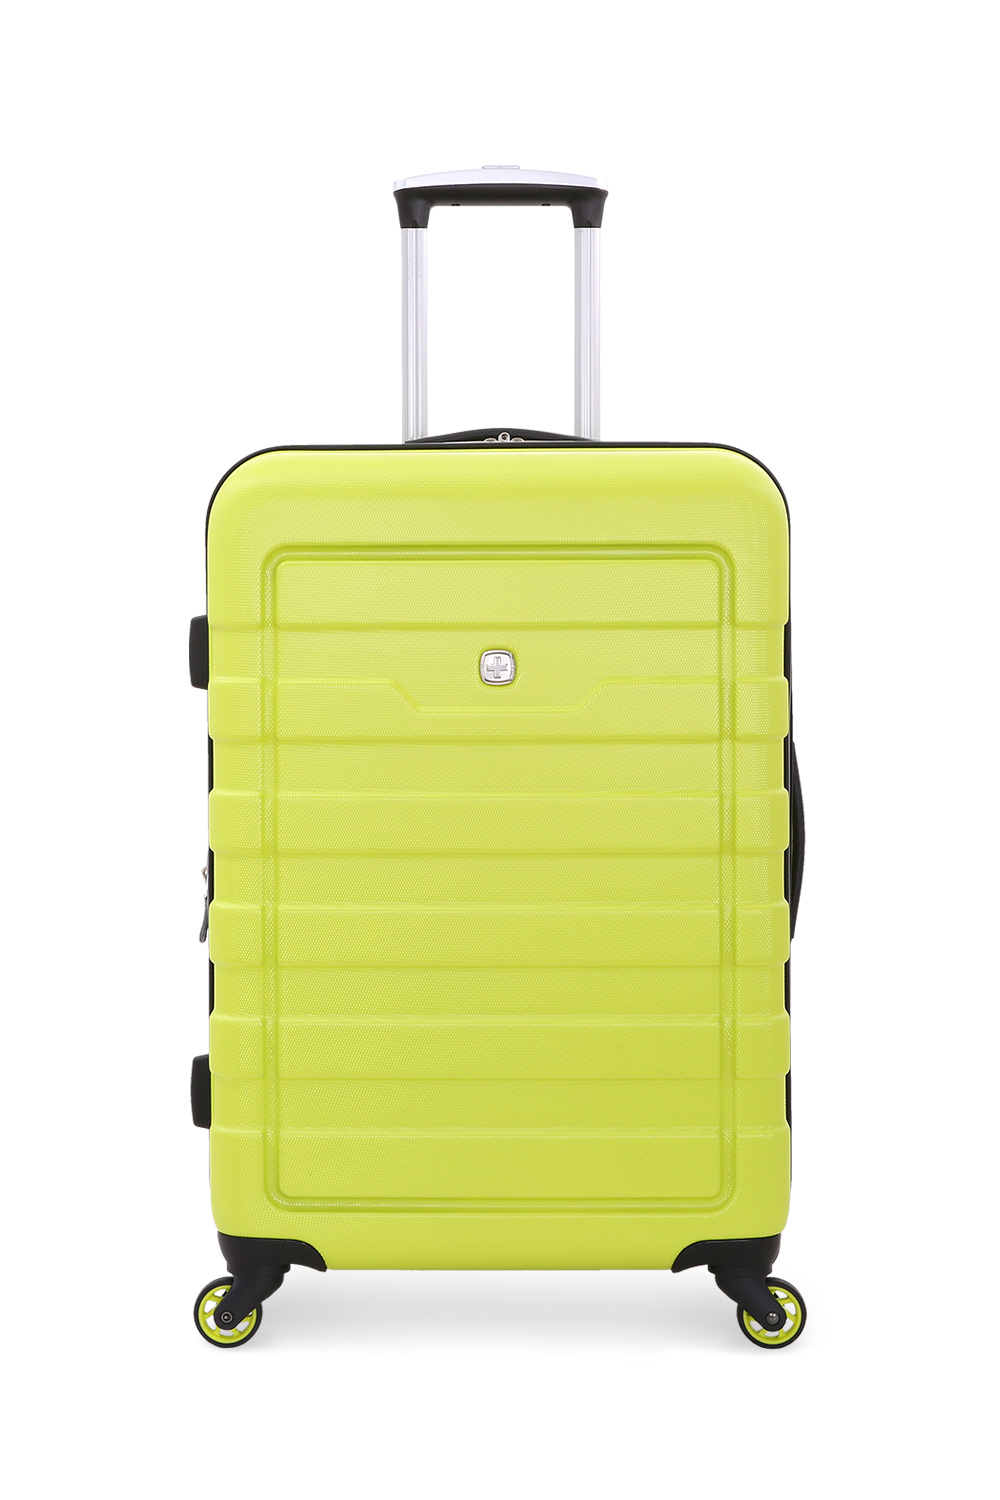 neon-yellow-hard-case-shell-swiss-gear-black-friday-luggage-deal